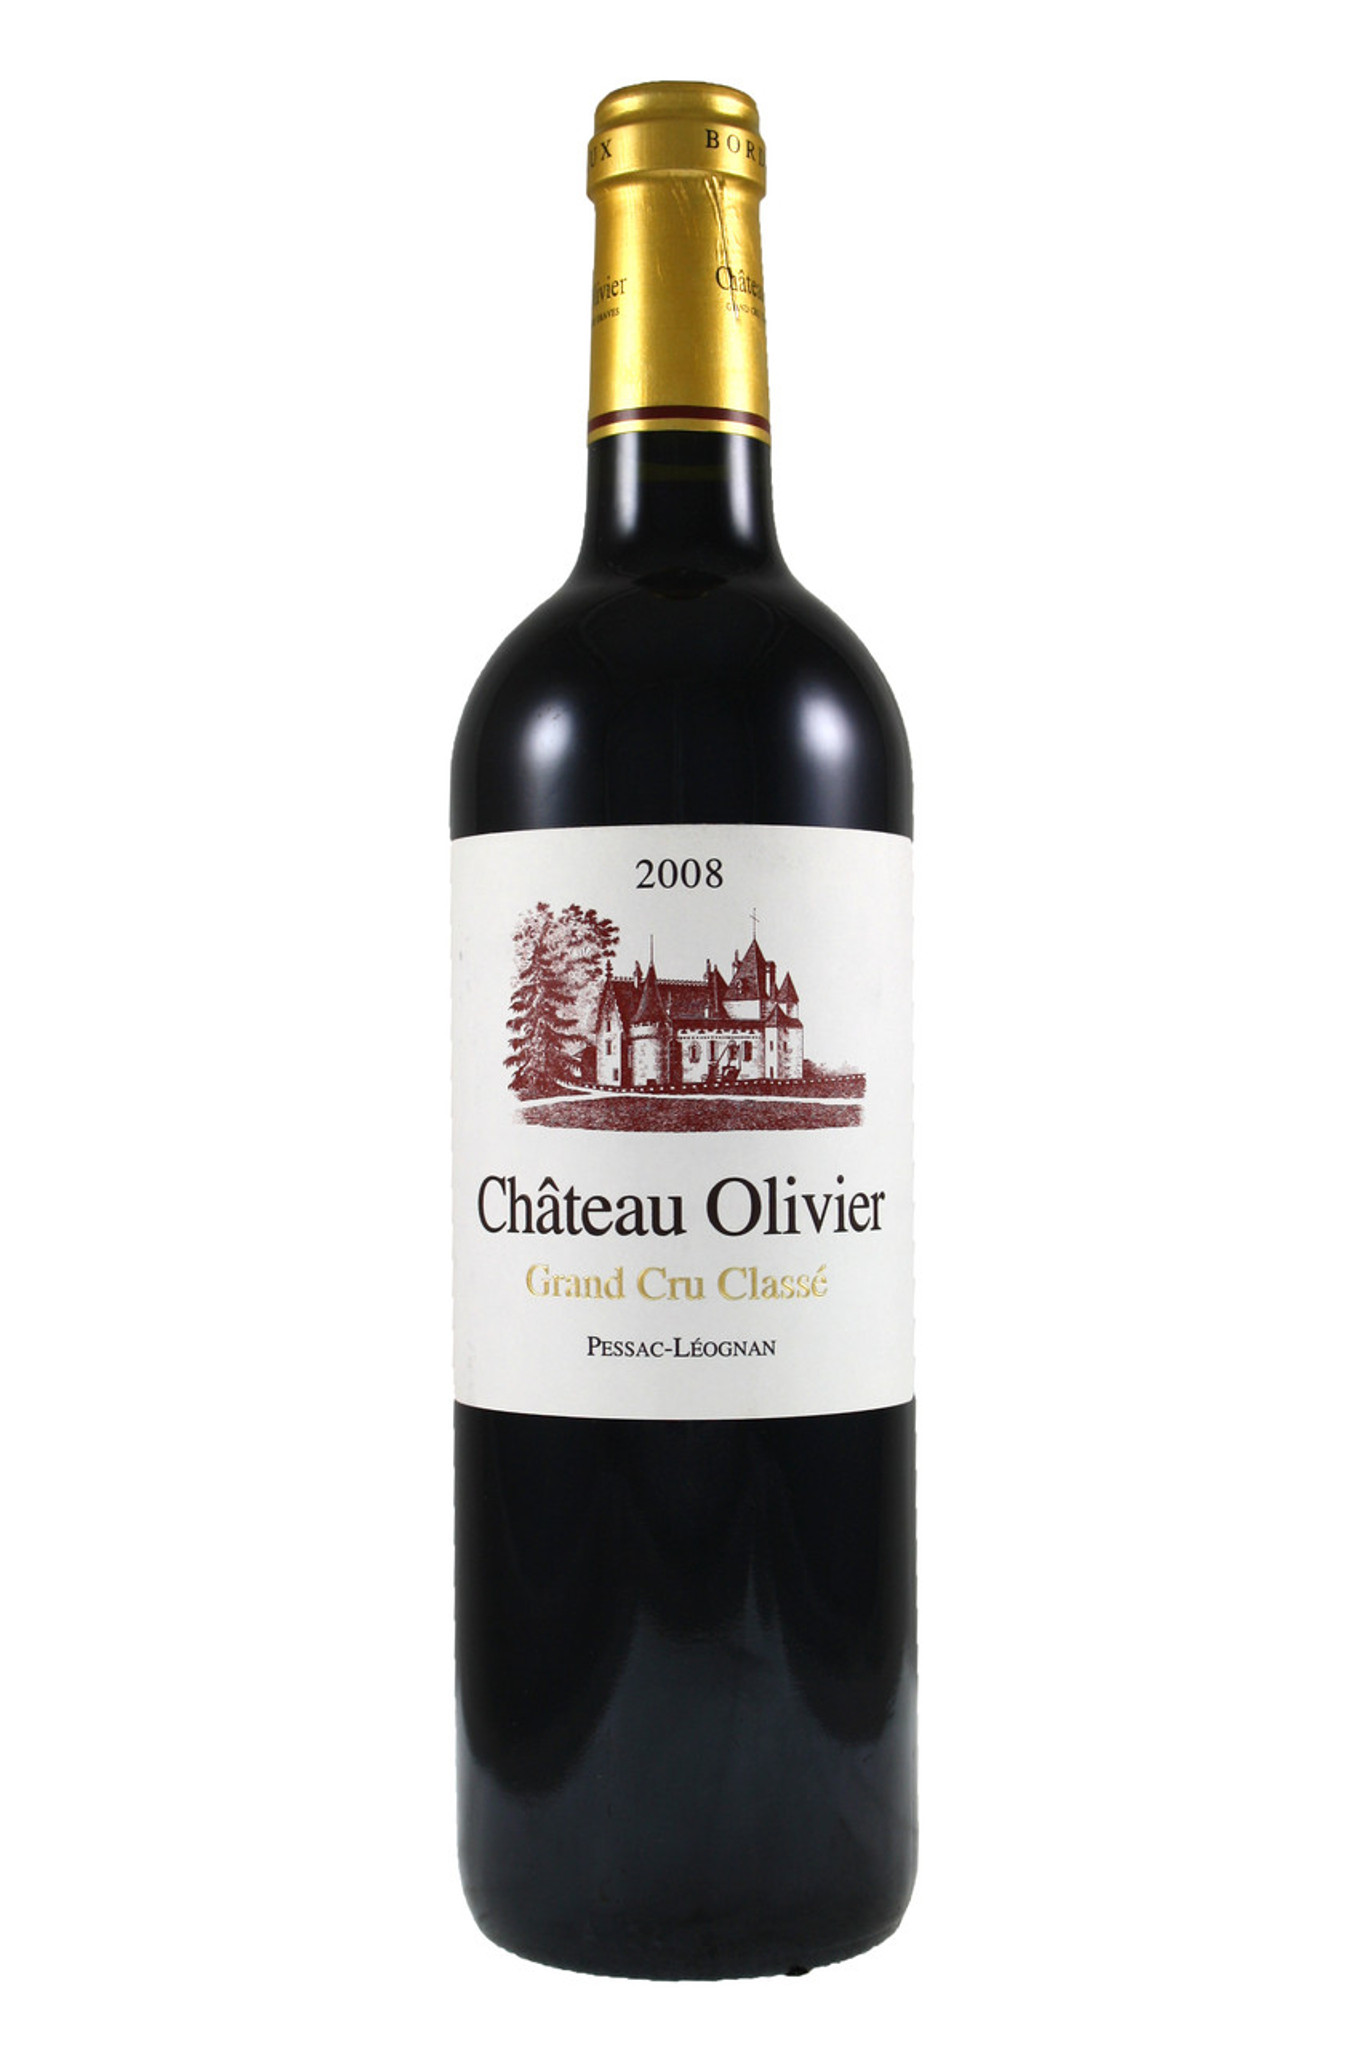 Chateau olivier 2008 chateau olivier from fraziers wine for Chateau olivier